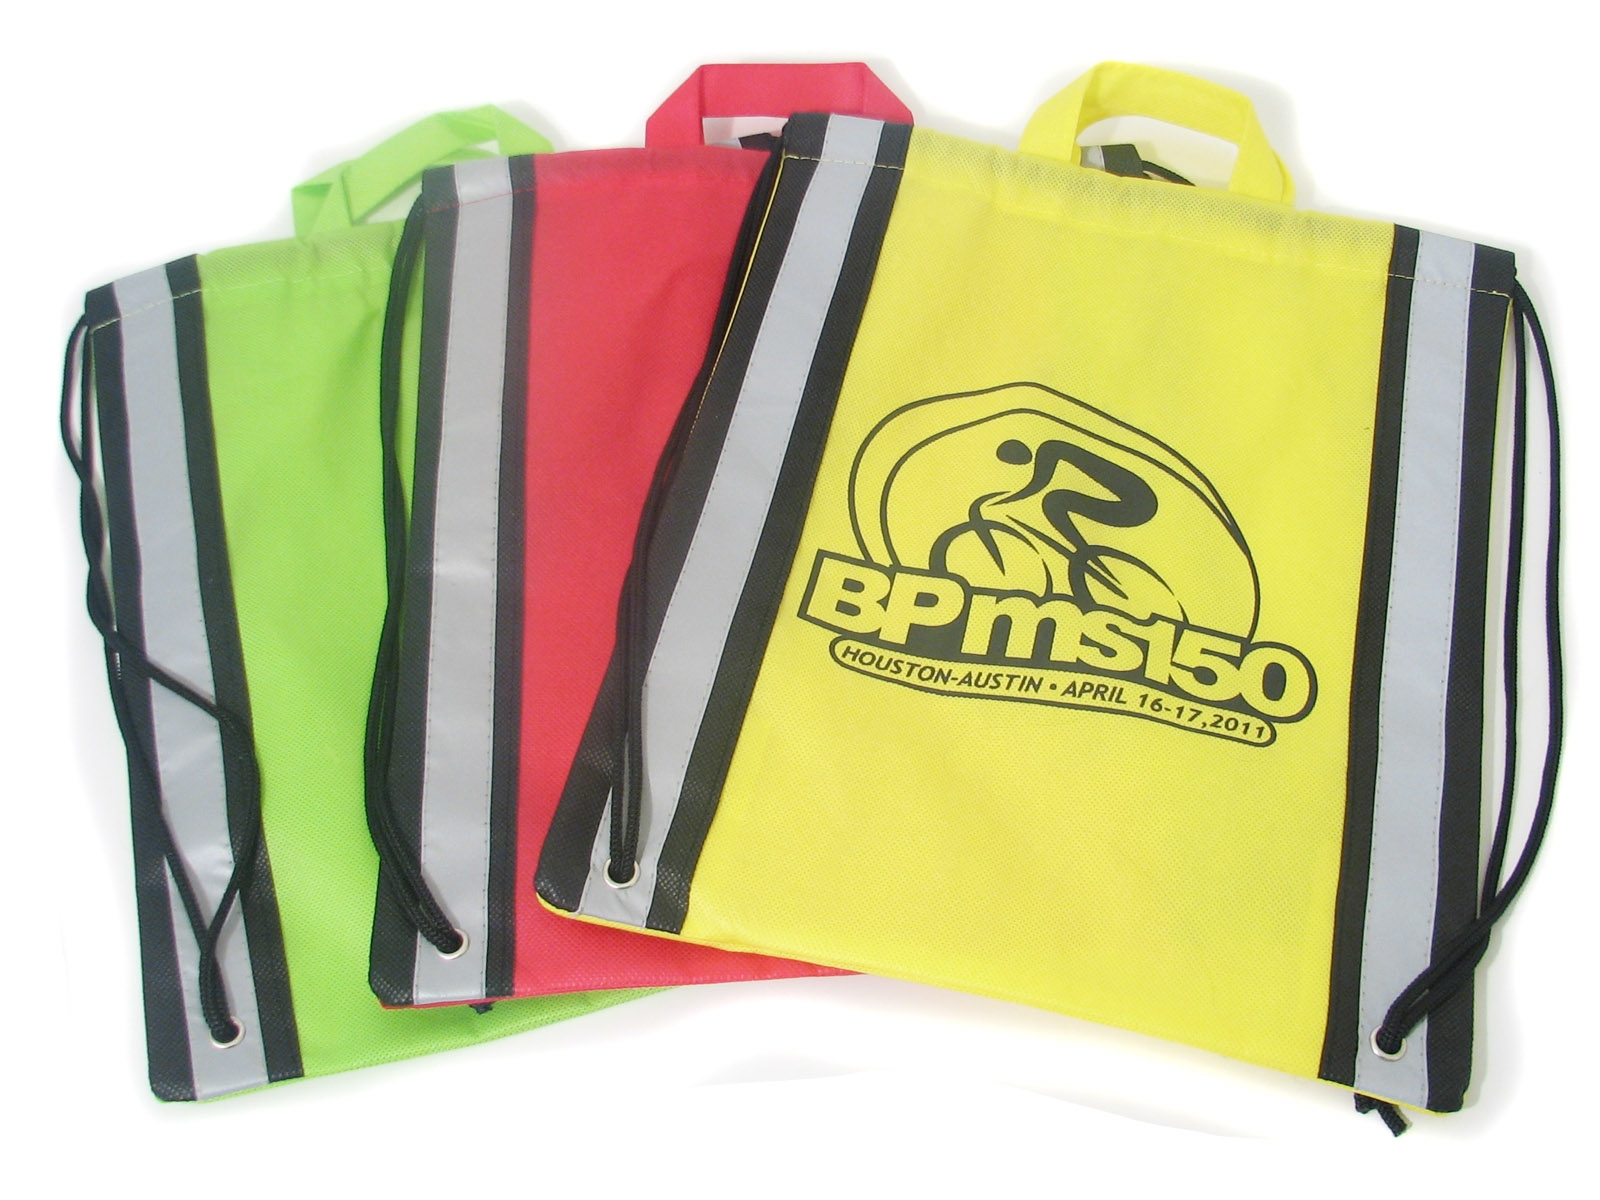 ec2ae4d1eb Drawstring bag - Import & manufacture for promotional and retail